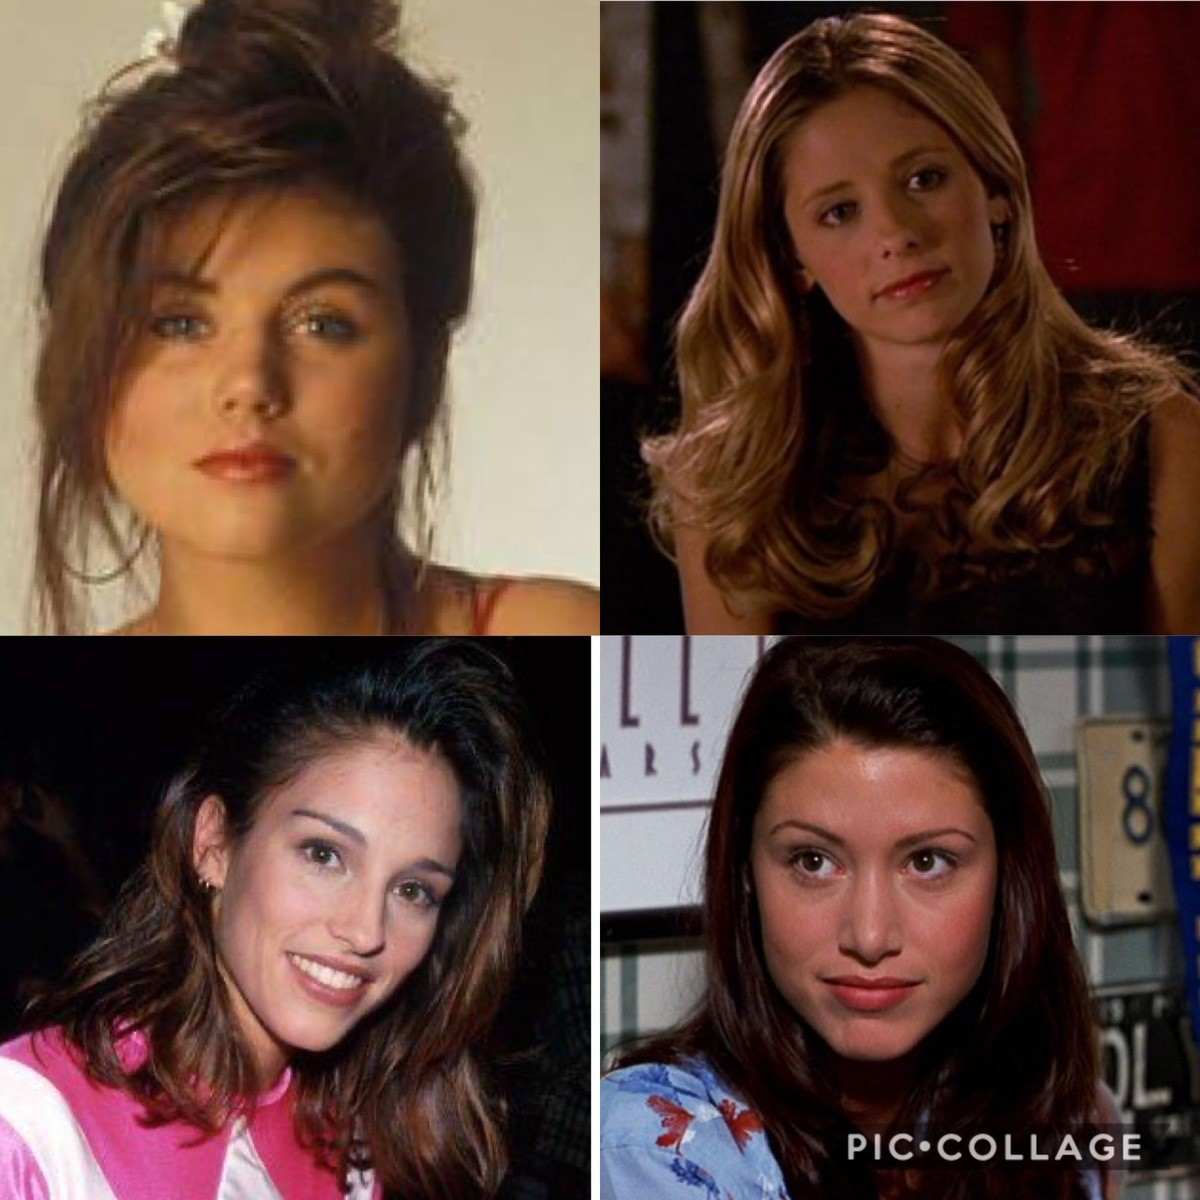 Growing up as a boy in the 90s. You probably had the hots for most of these women.. And were is the young Allyson Hannigan? Shame on all of you